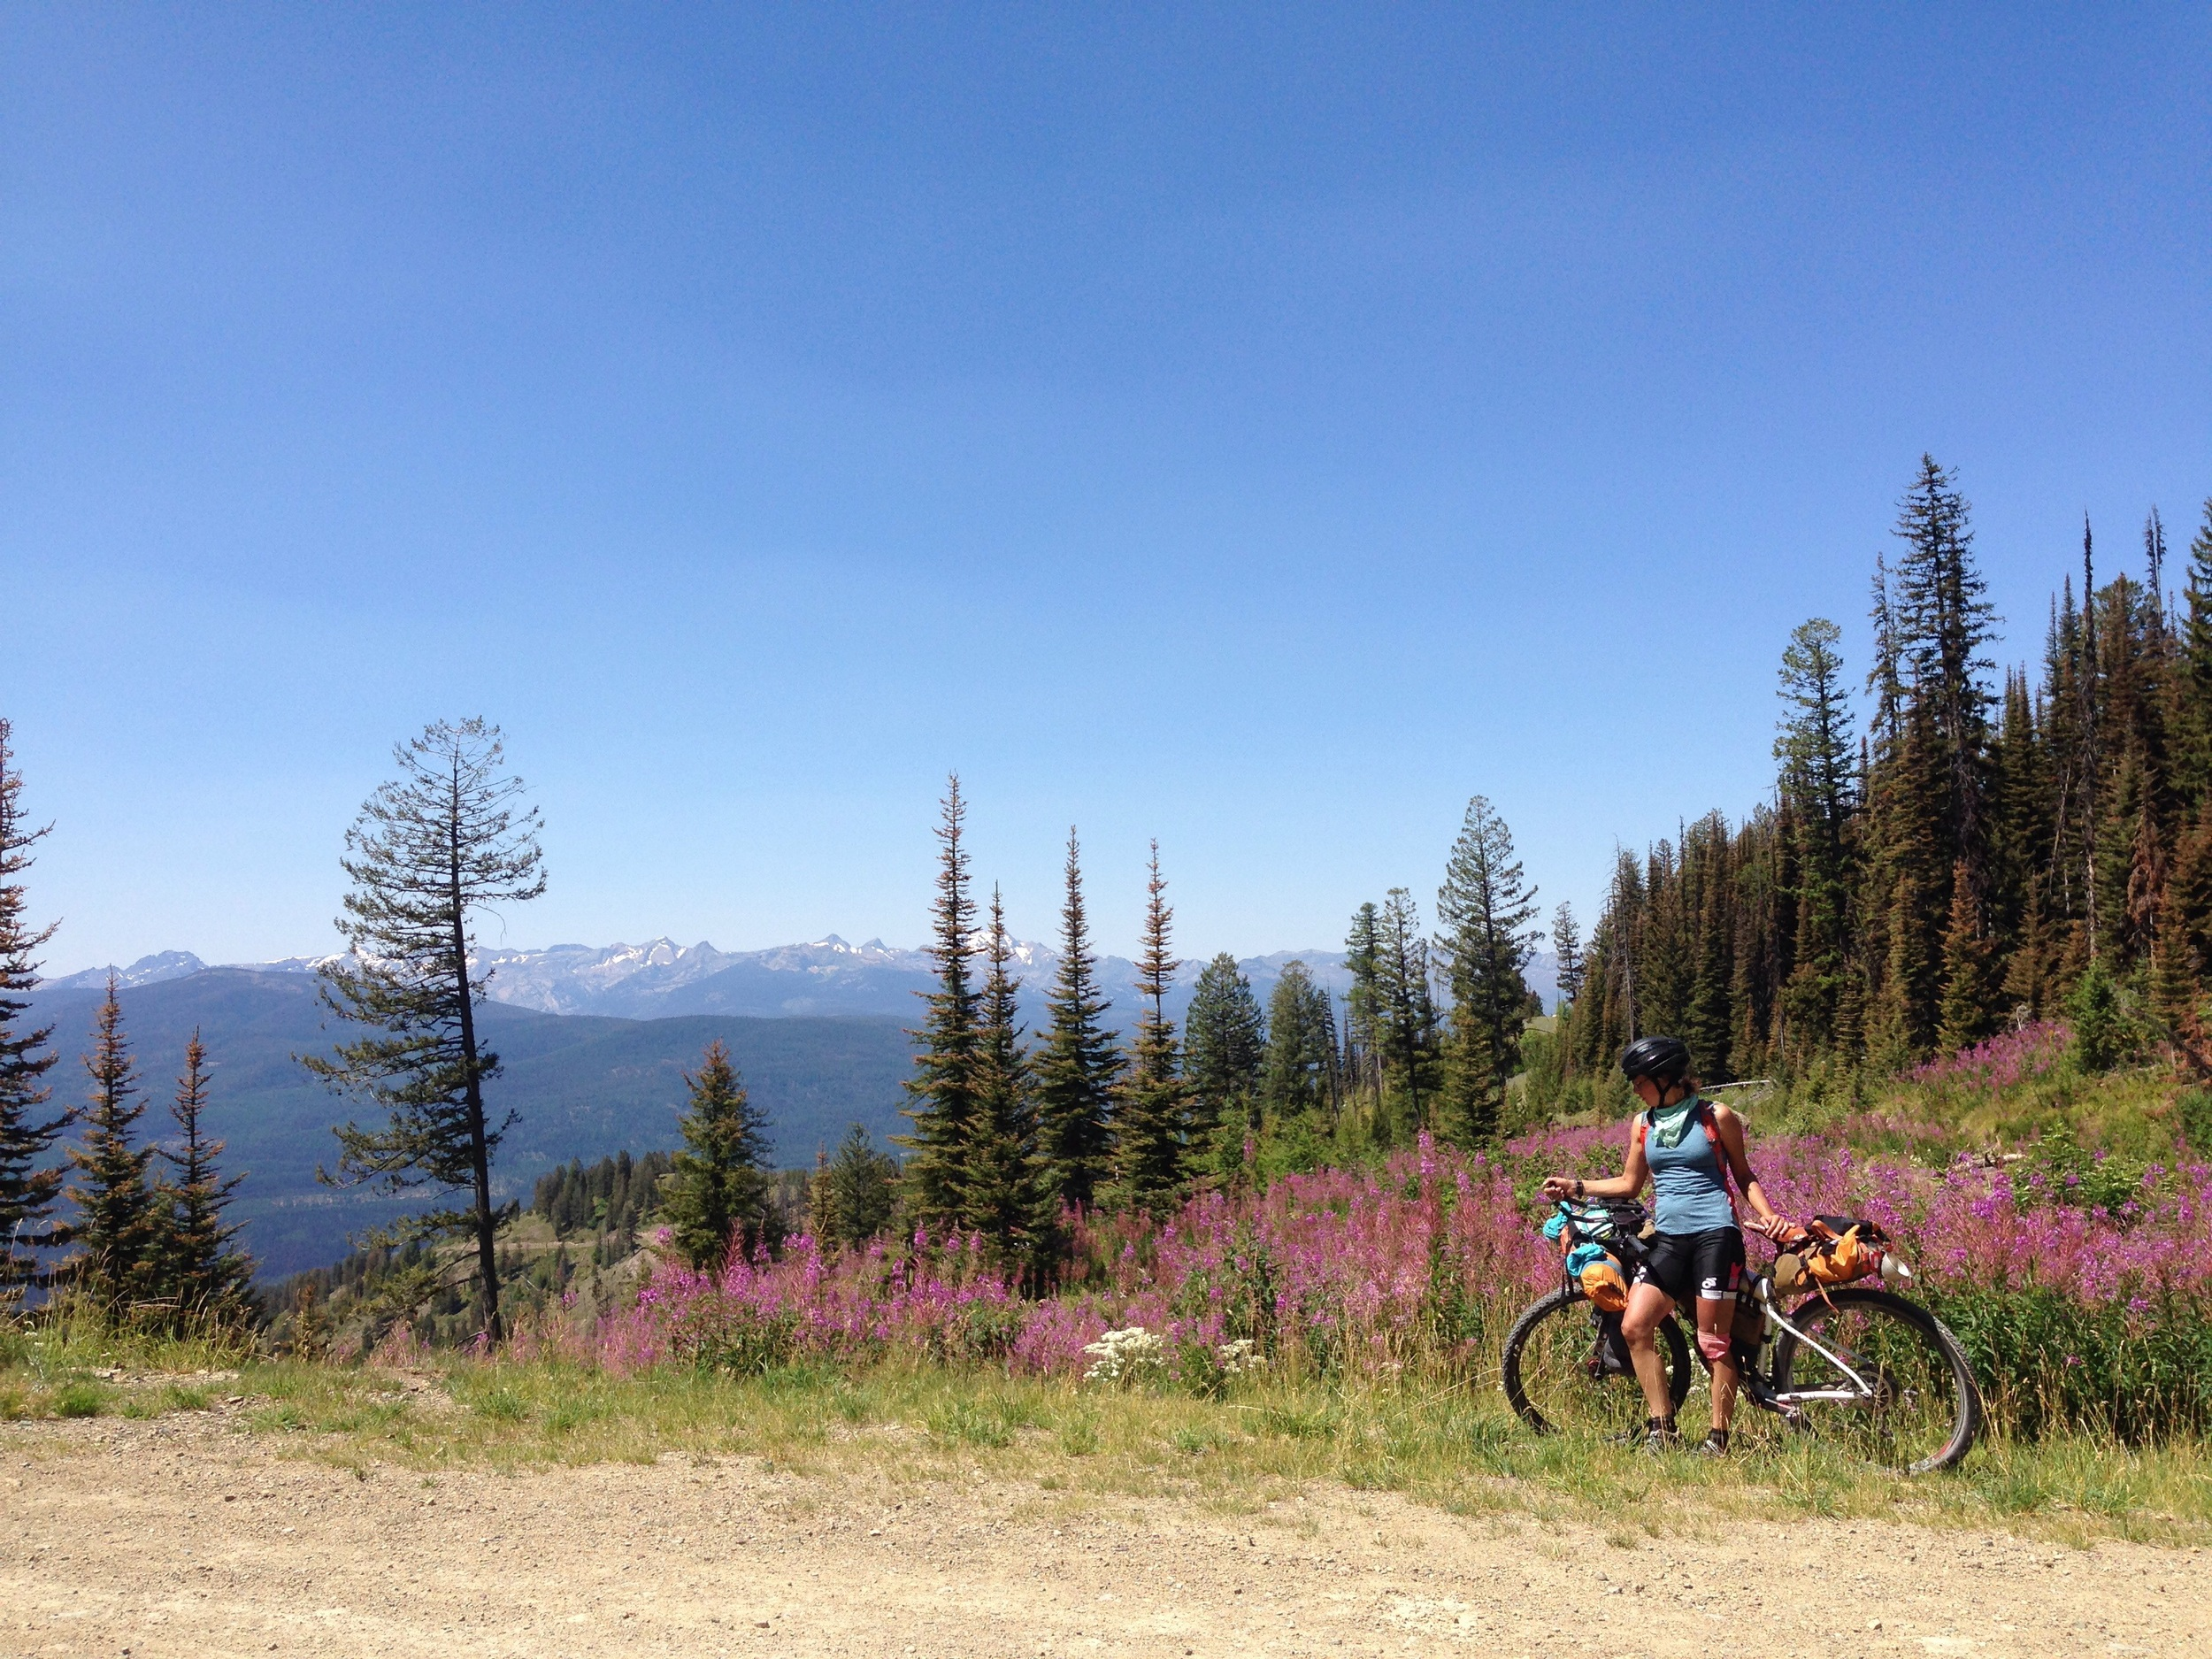 At the top of a pass right before Seely Lake